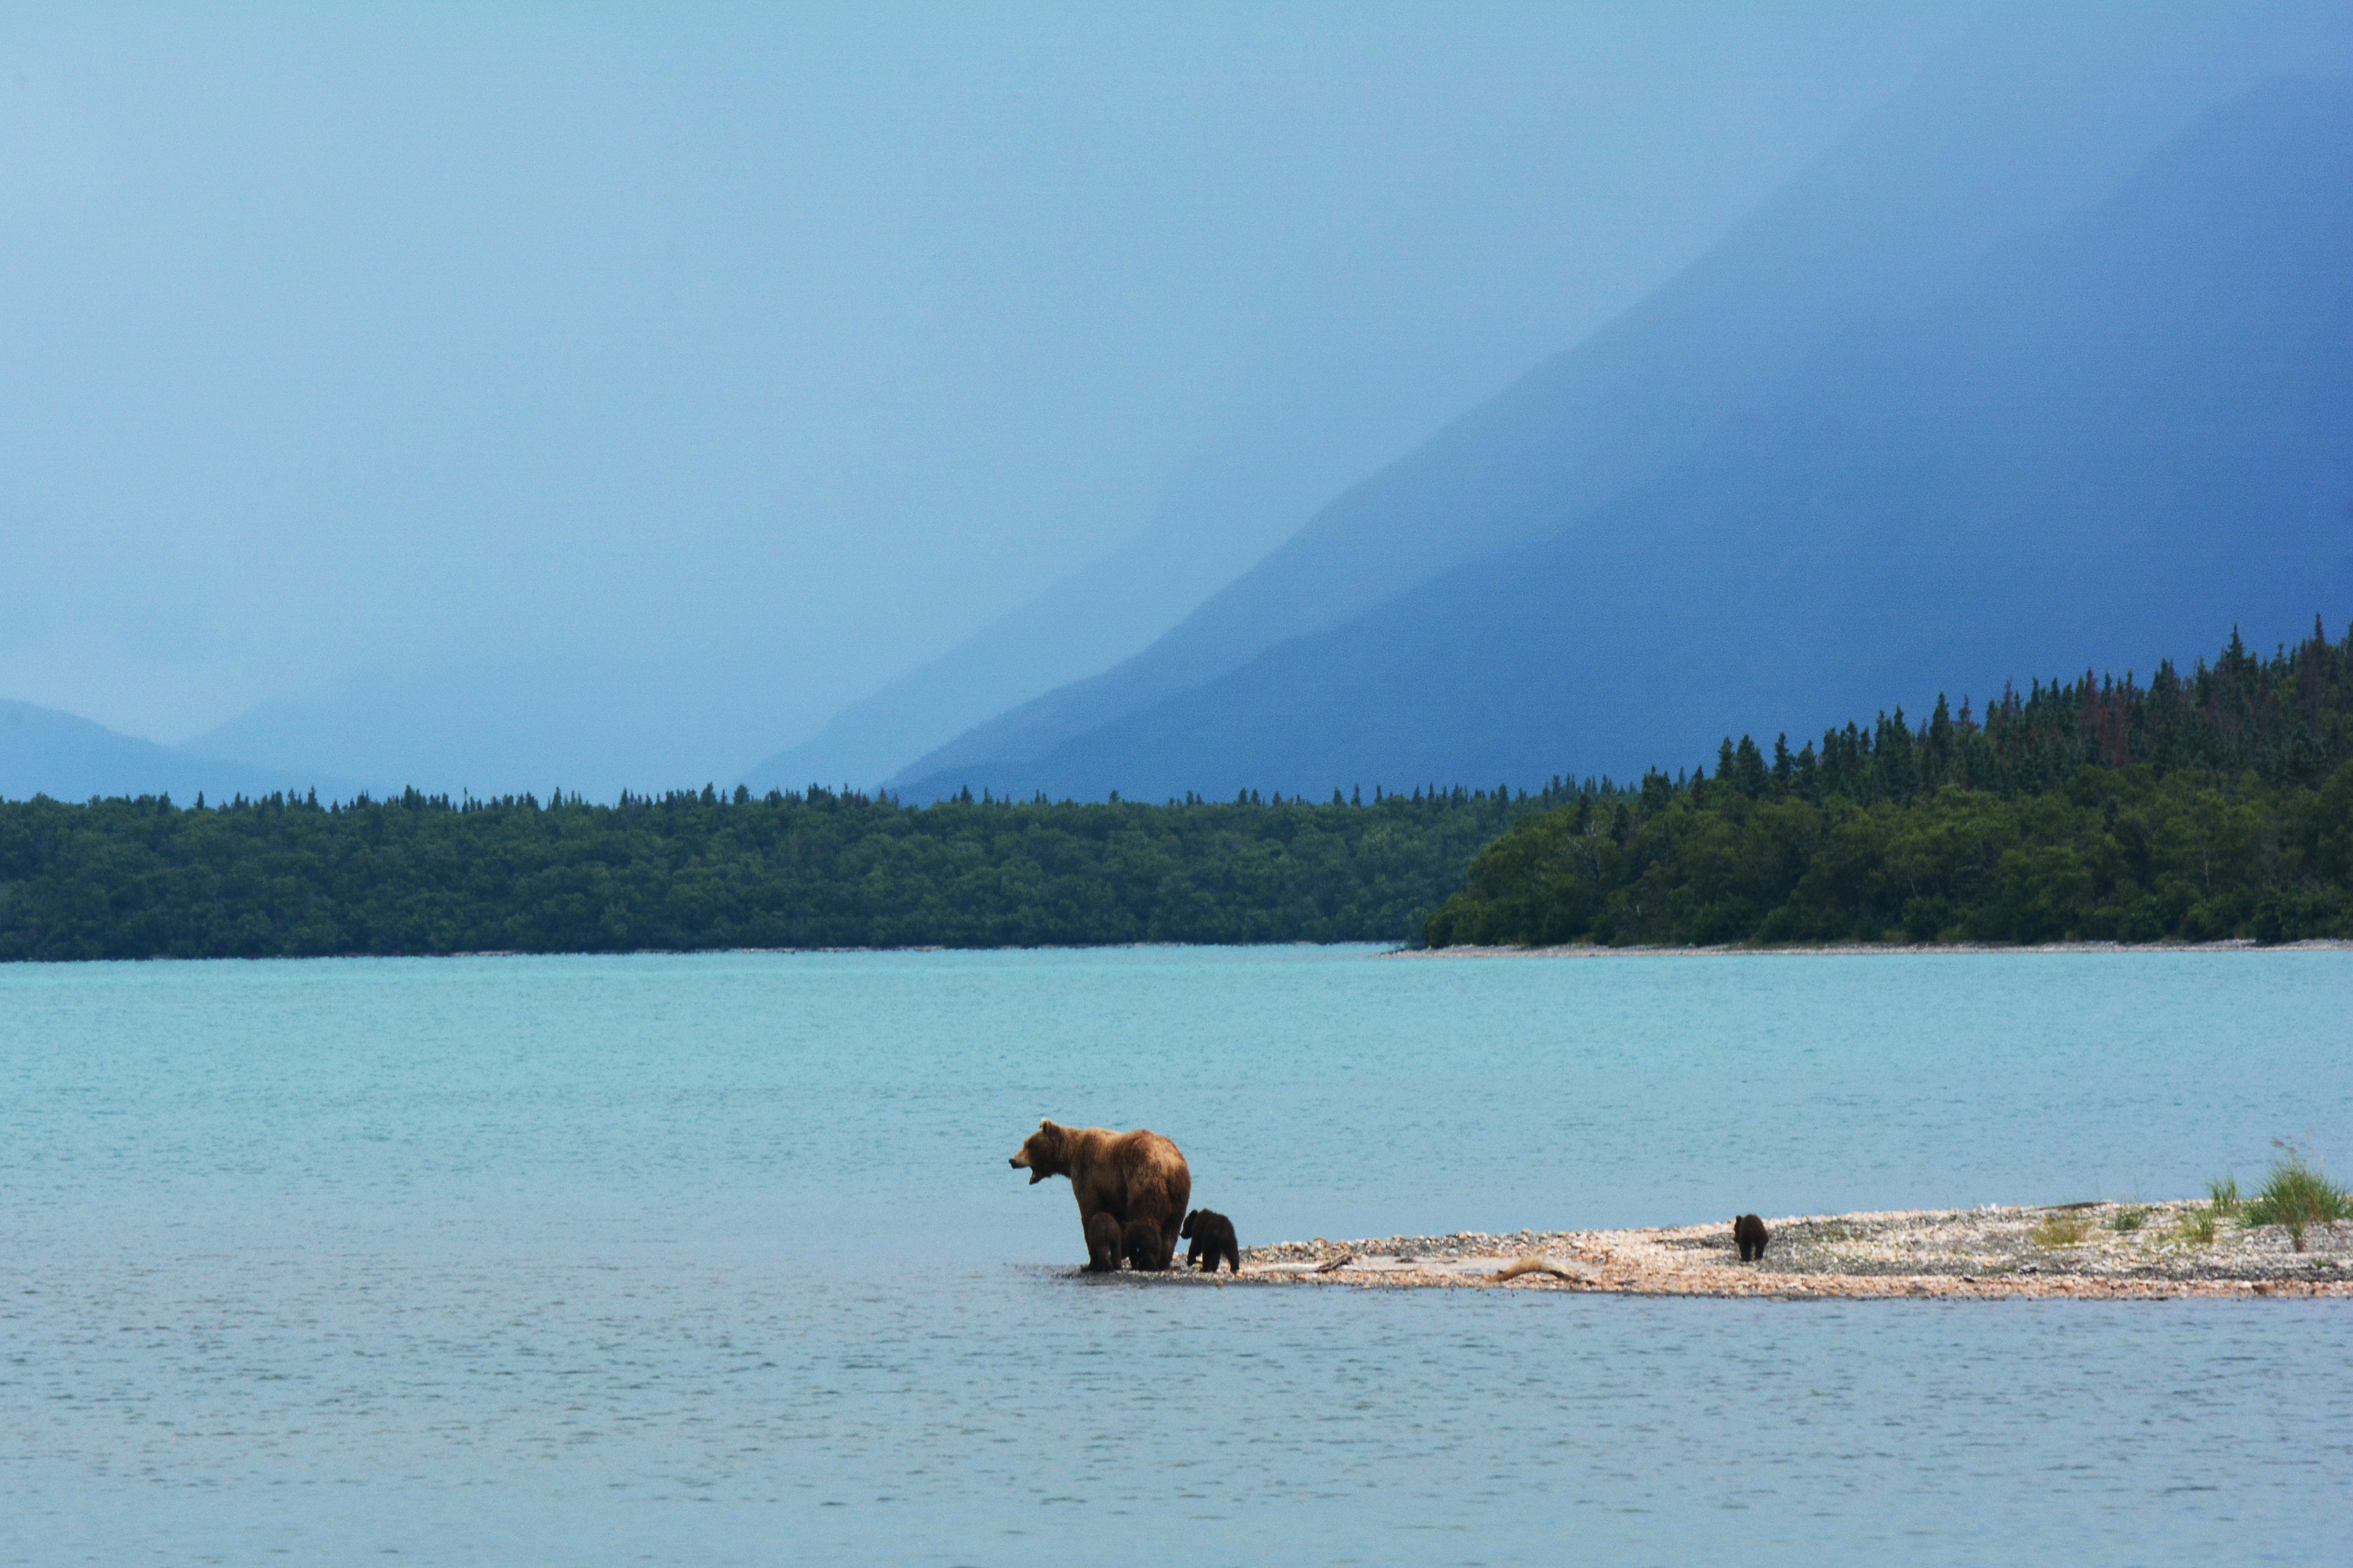 brown bear standing on seashore near sea under blue sky during daytime